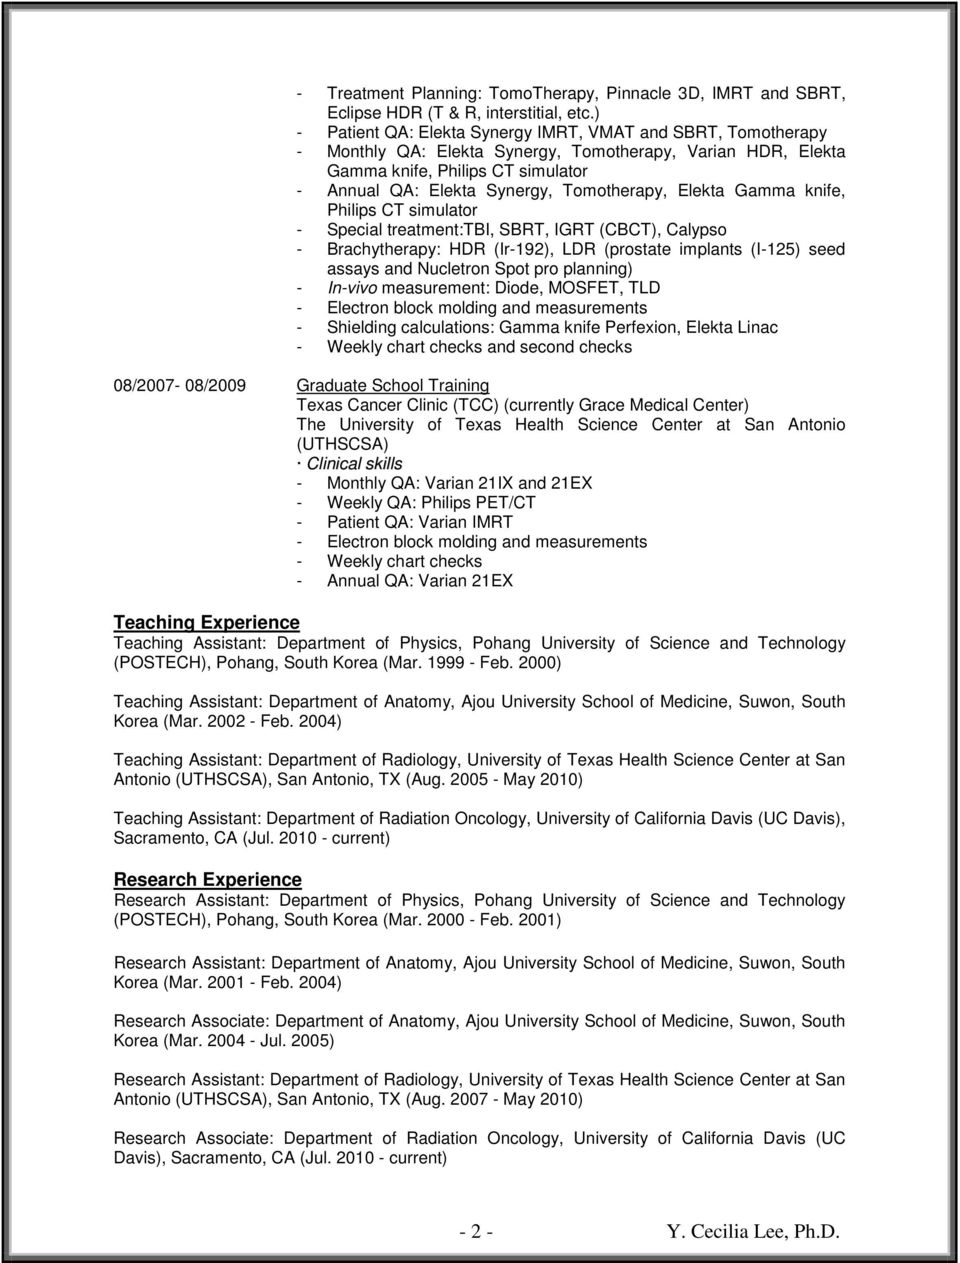 Curriculum Vitae  Department of Radiology The University of